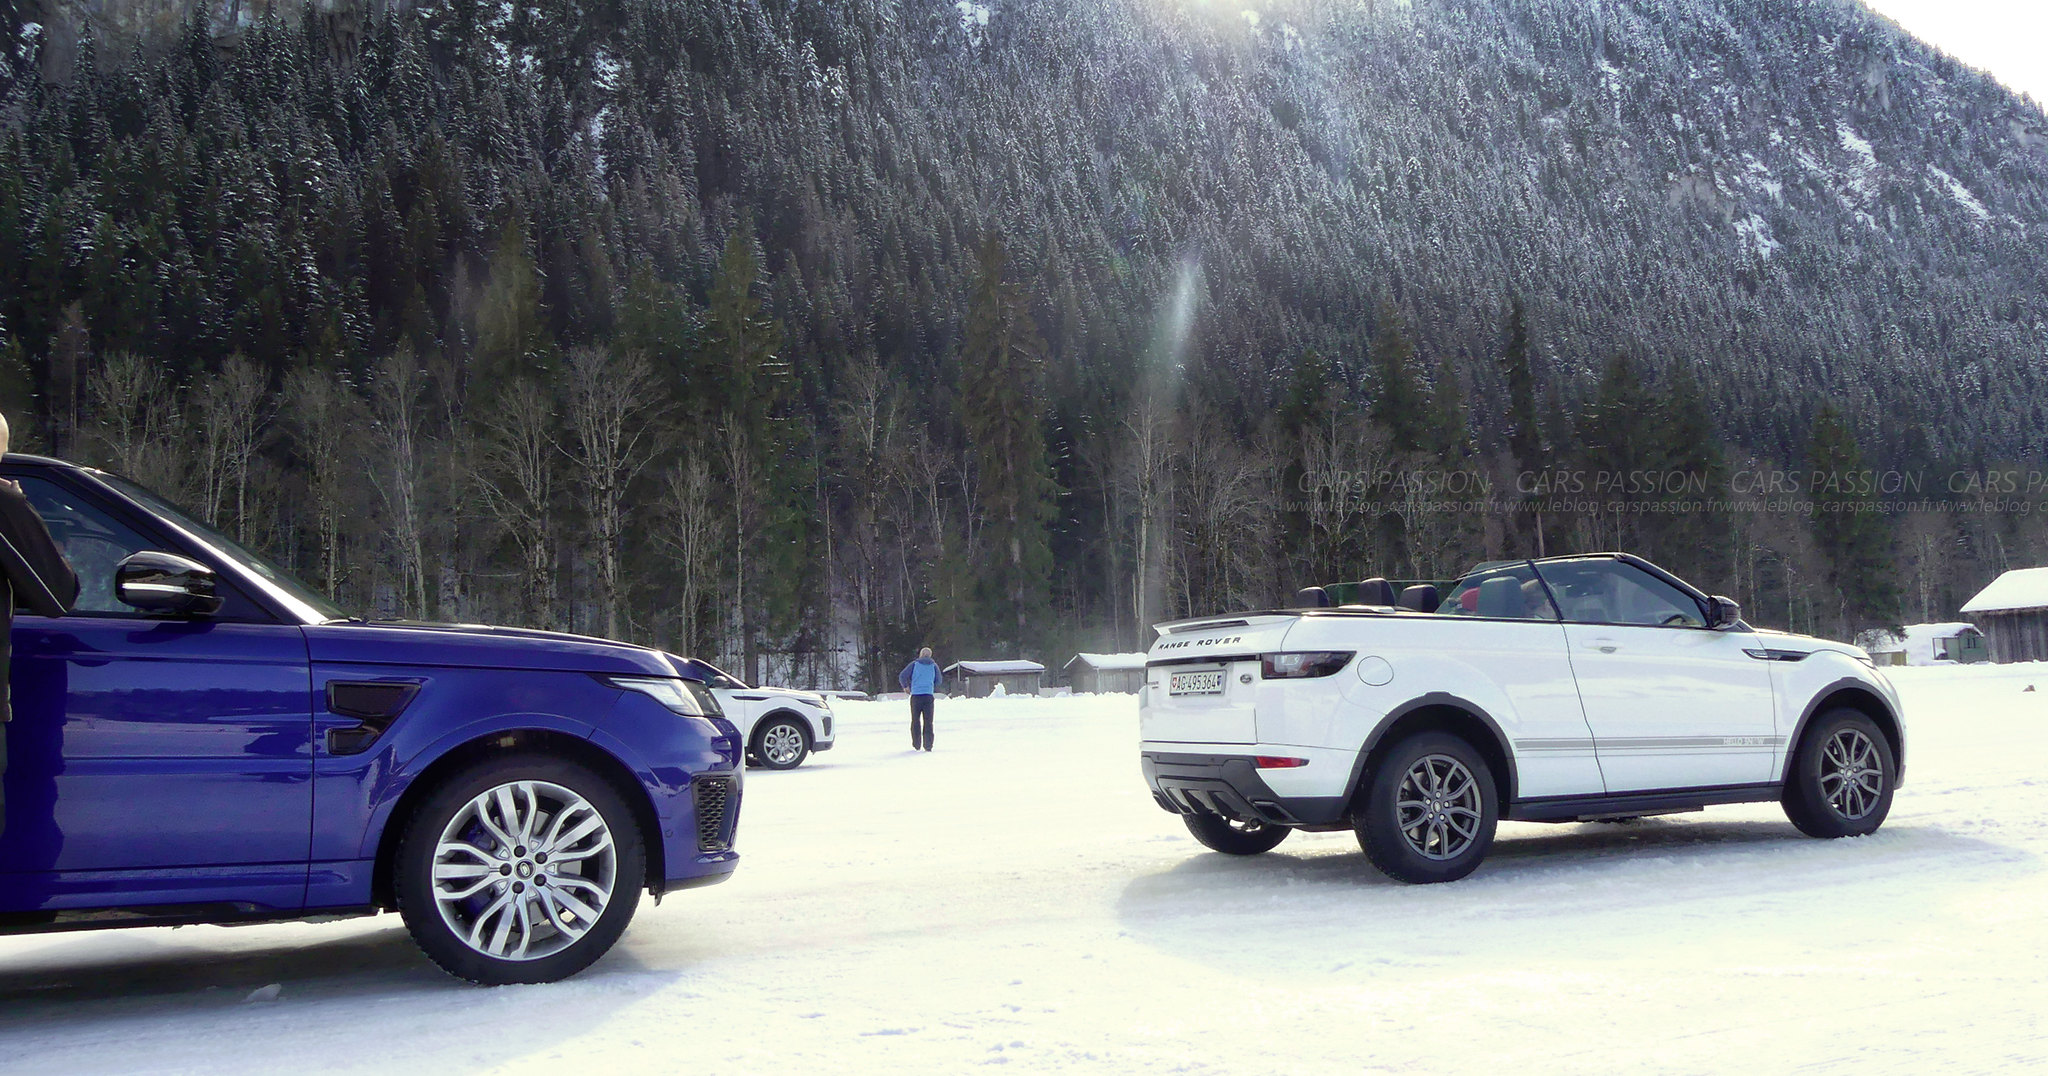 jaguar-land-rover-ice-drivng-esperience-gstaad (2)